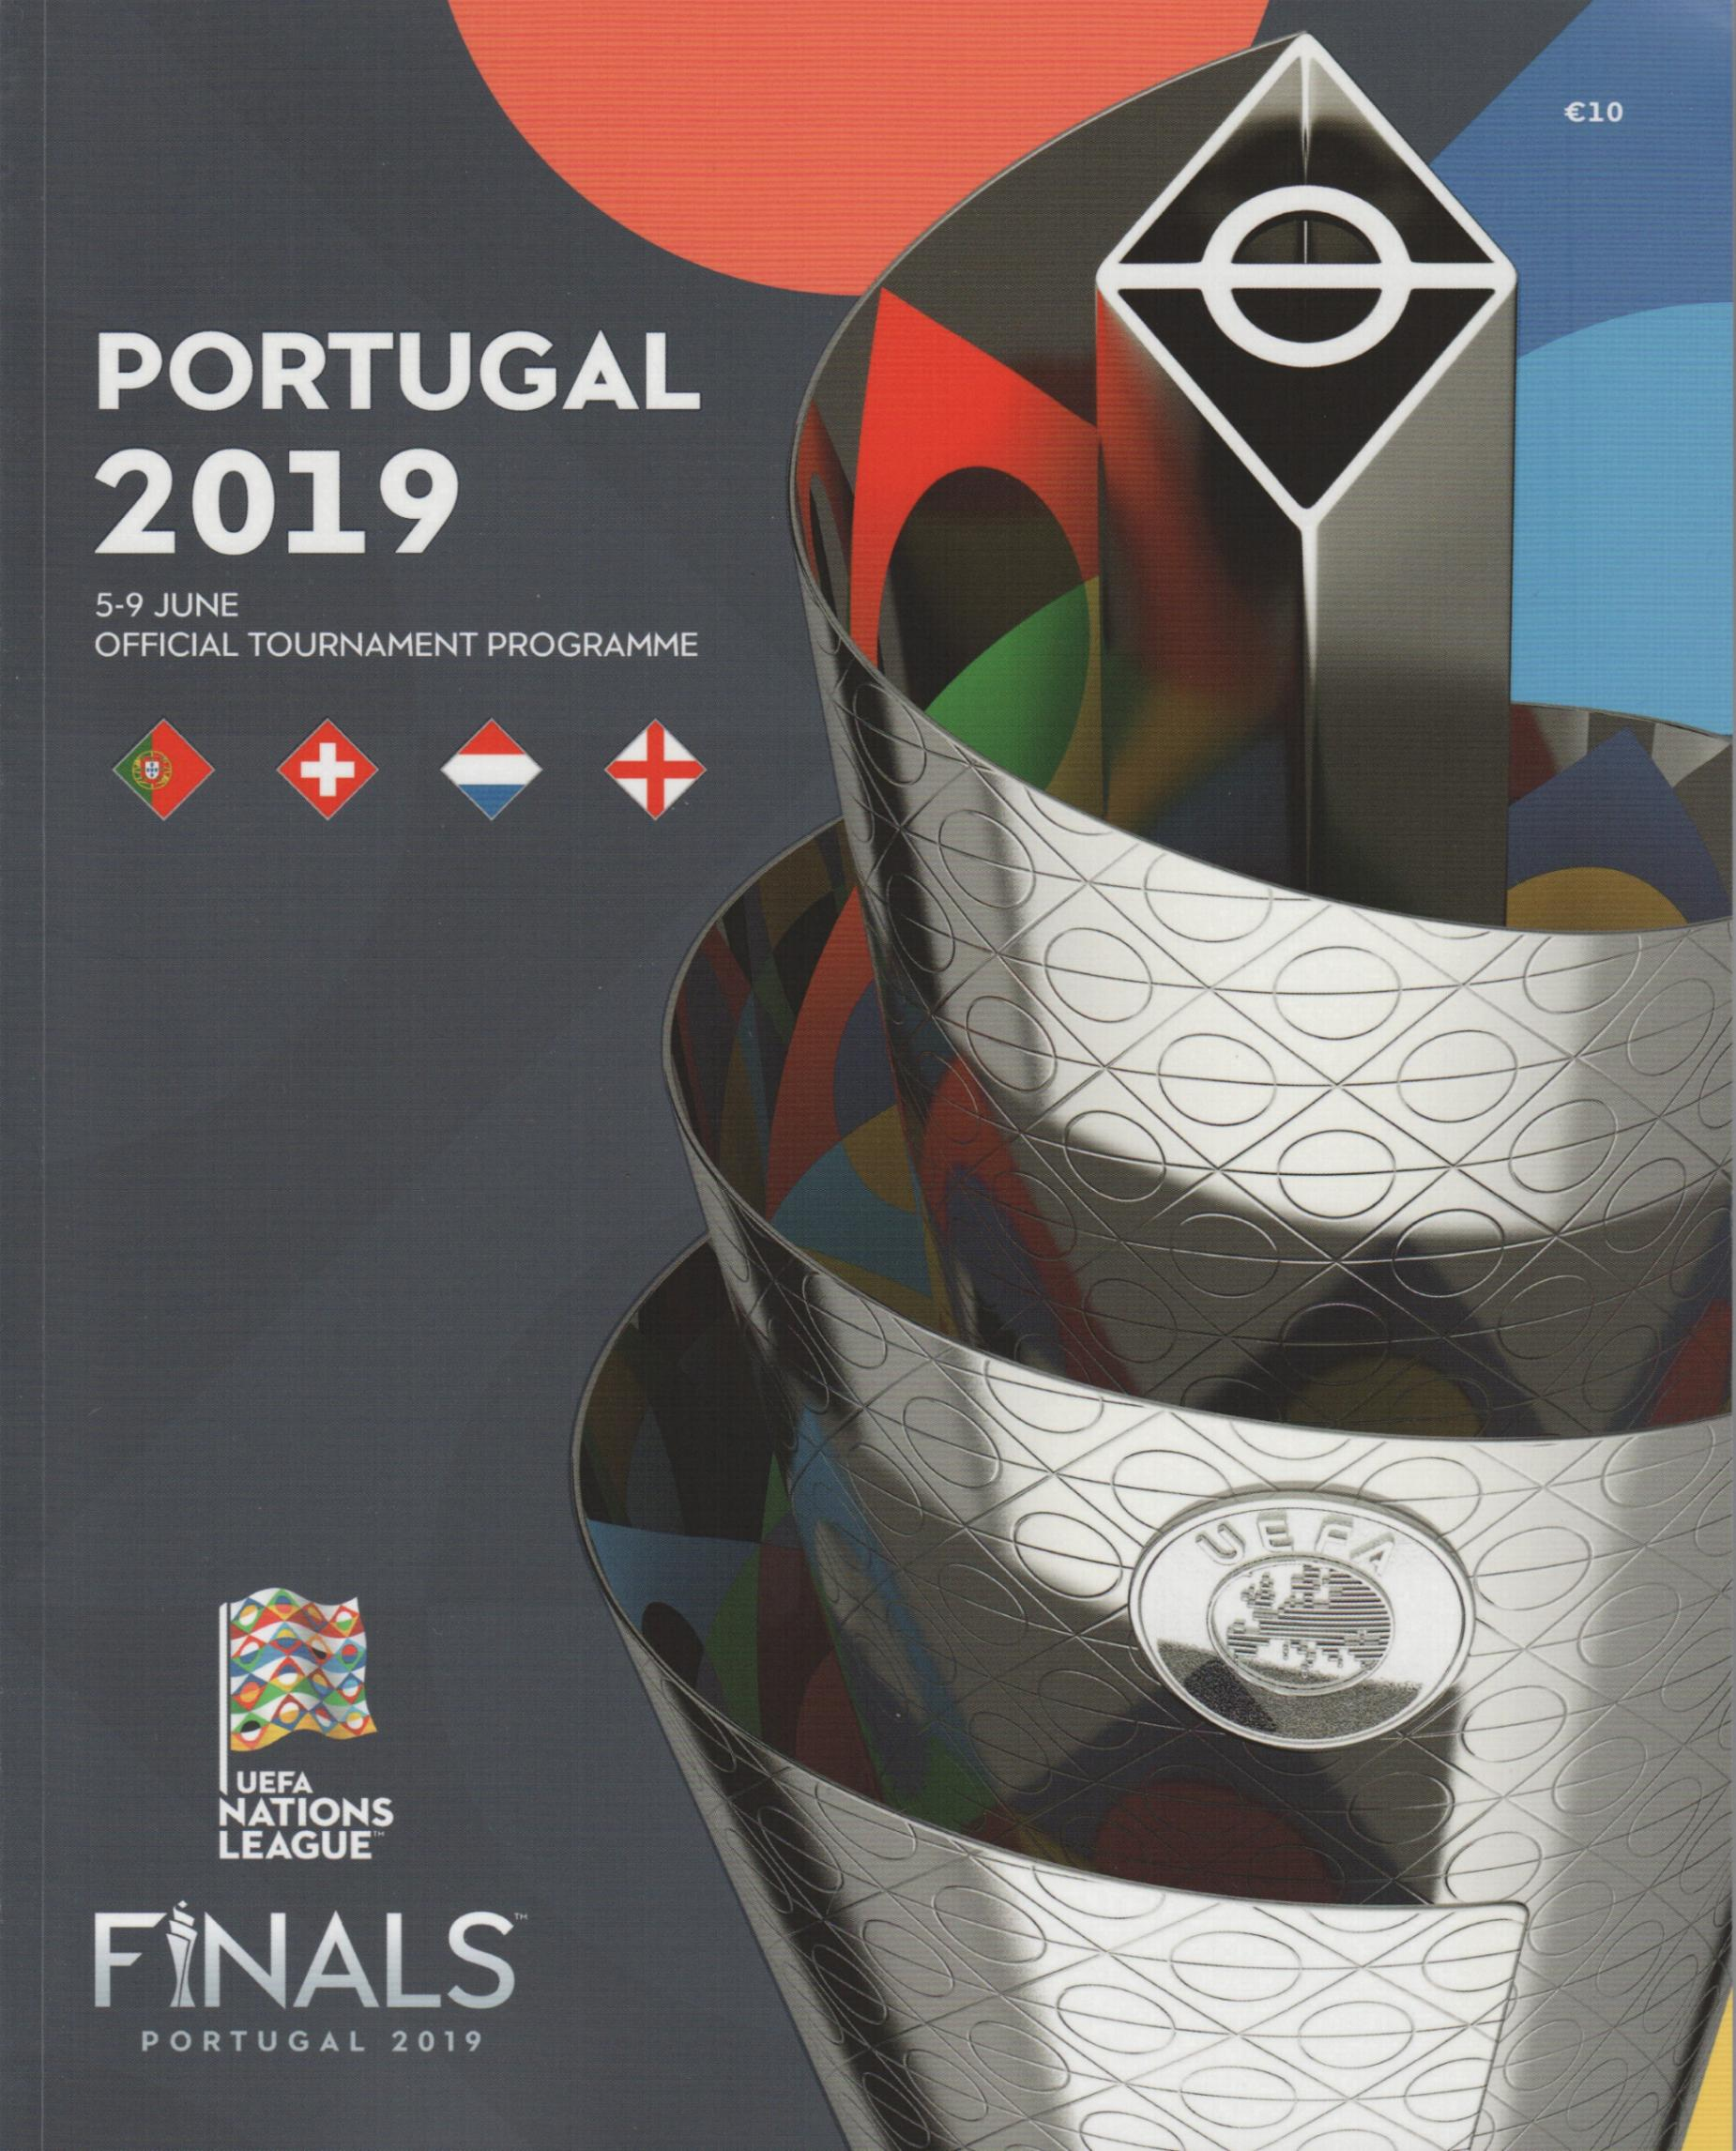 2019 UEFA NATIONS LEAGUE FINALS - OFFICIAL TOURNAMENT PROGRAMME